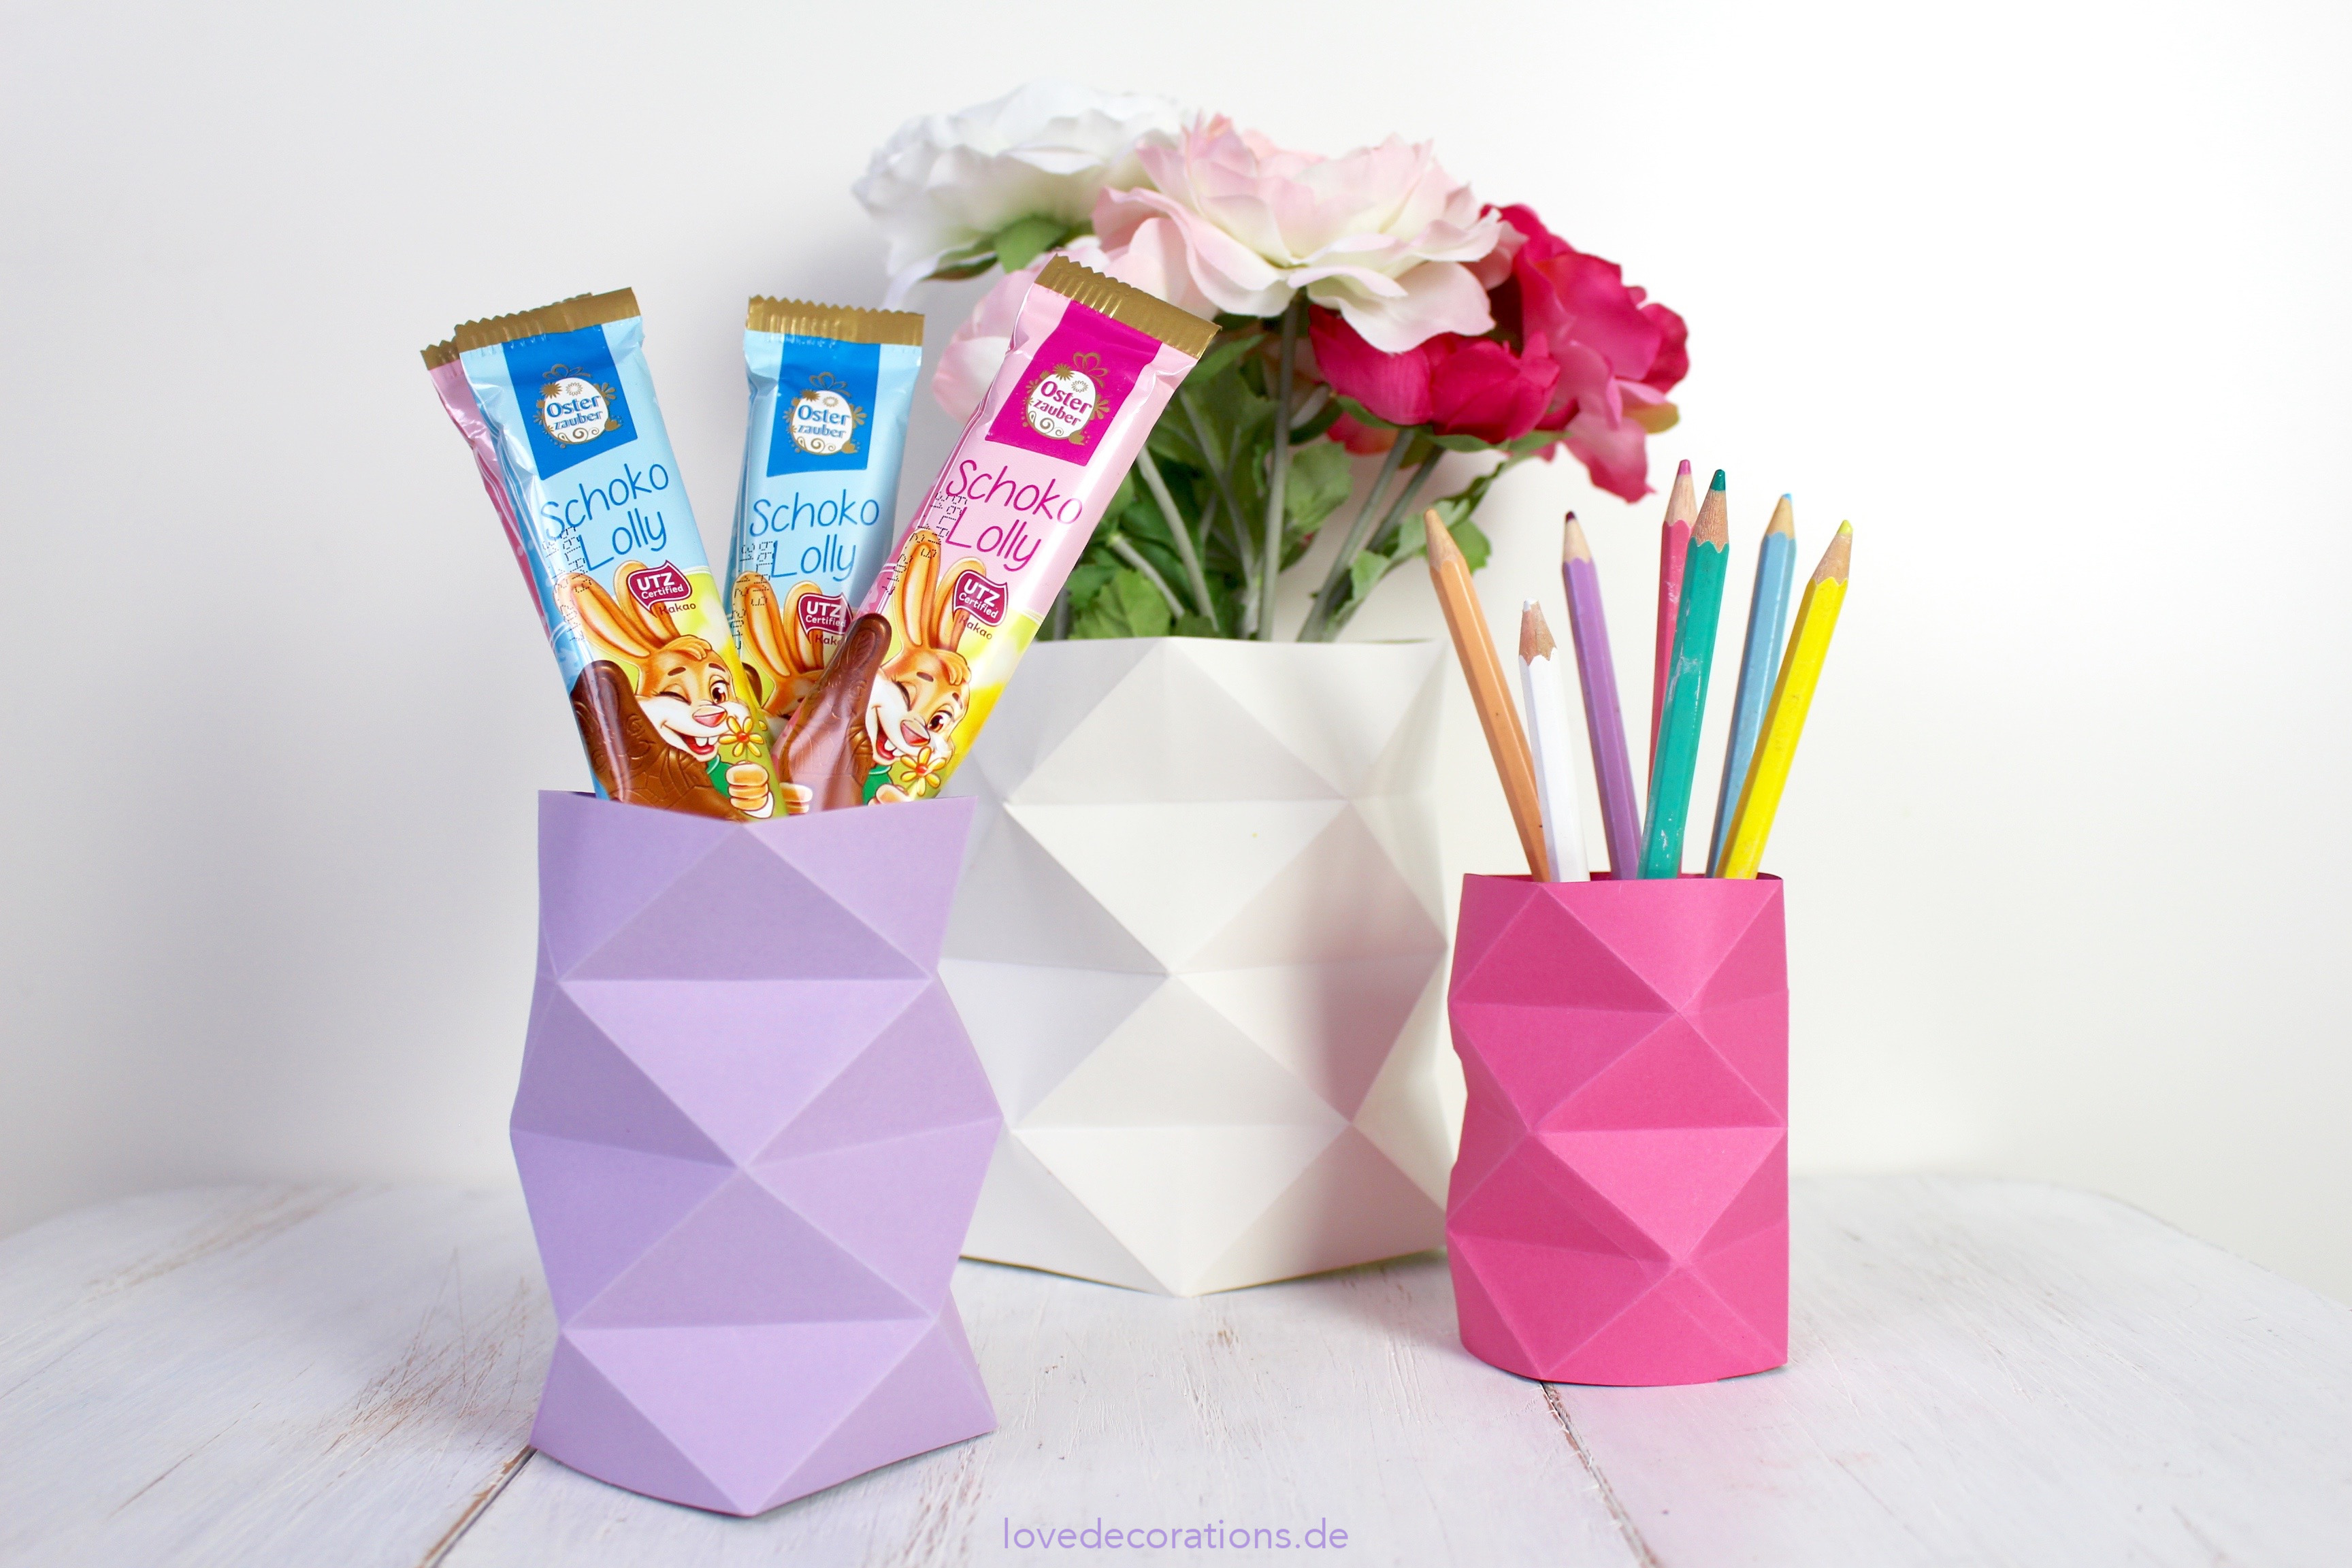 Origami 3D Origami vase Paper & Party Supplies Finished Origami ... | 2304x3456